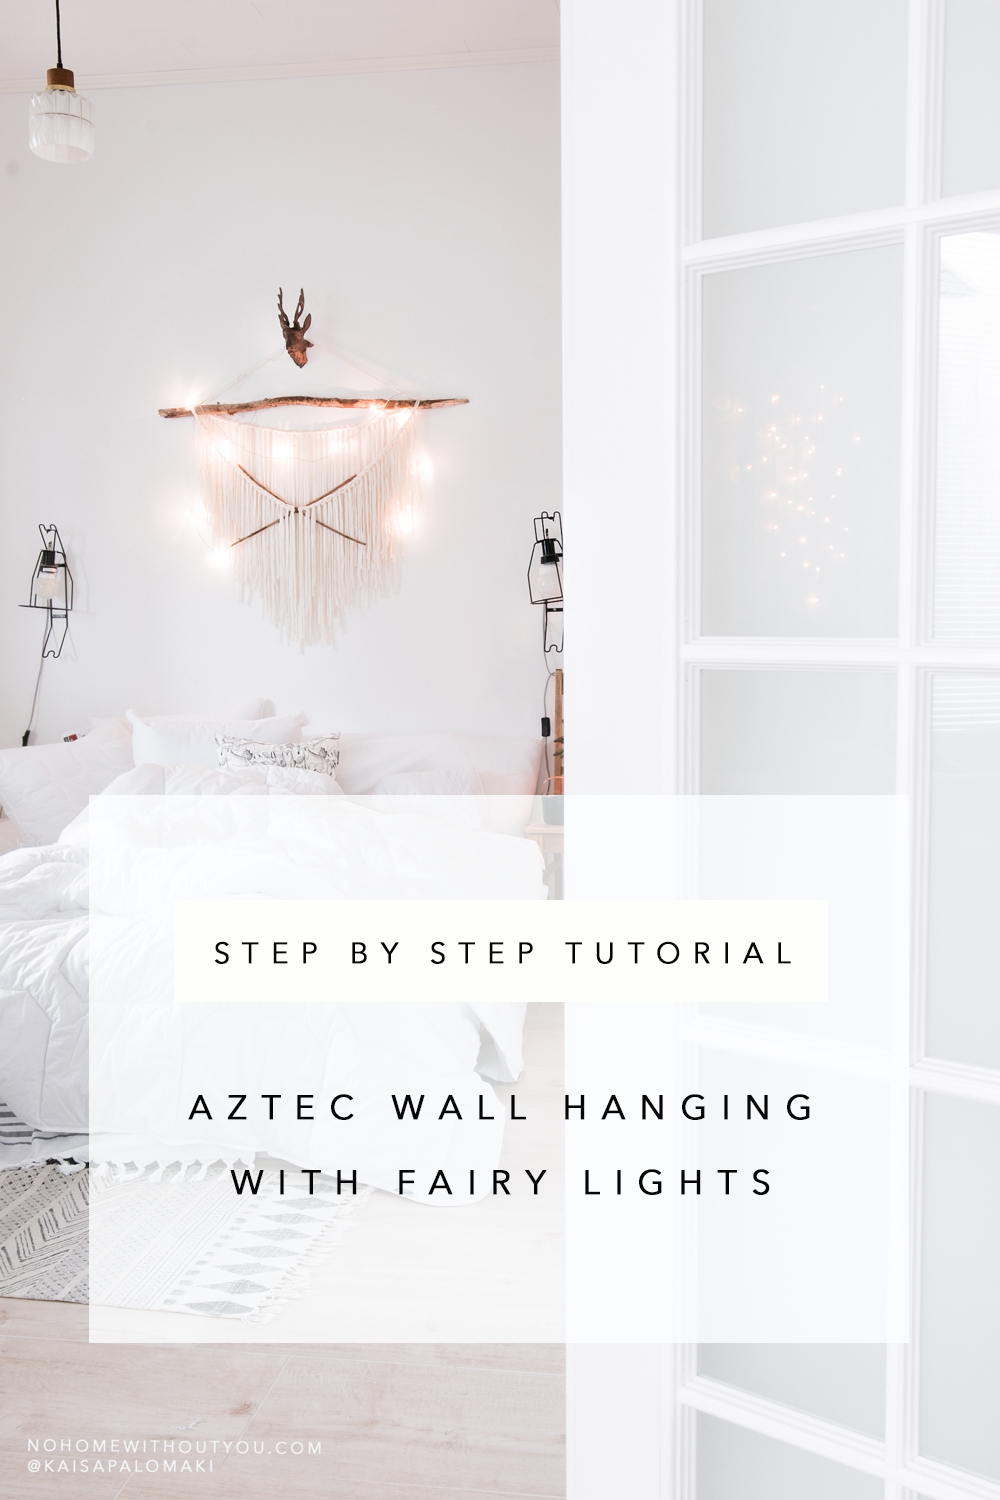 Aztec wall hanging tutorial No home without you blog